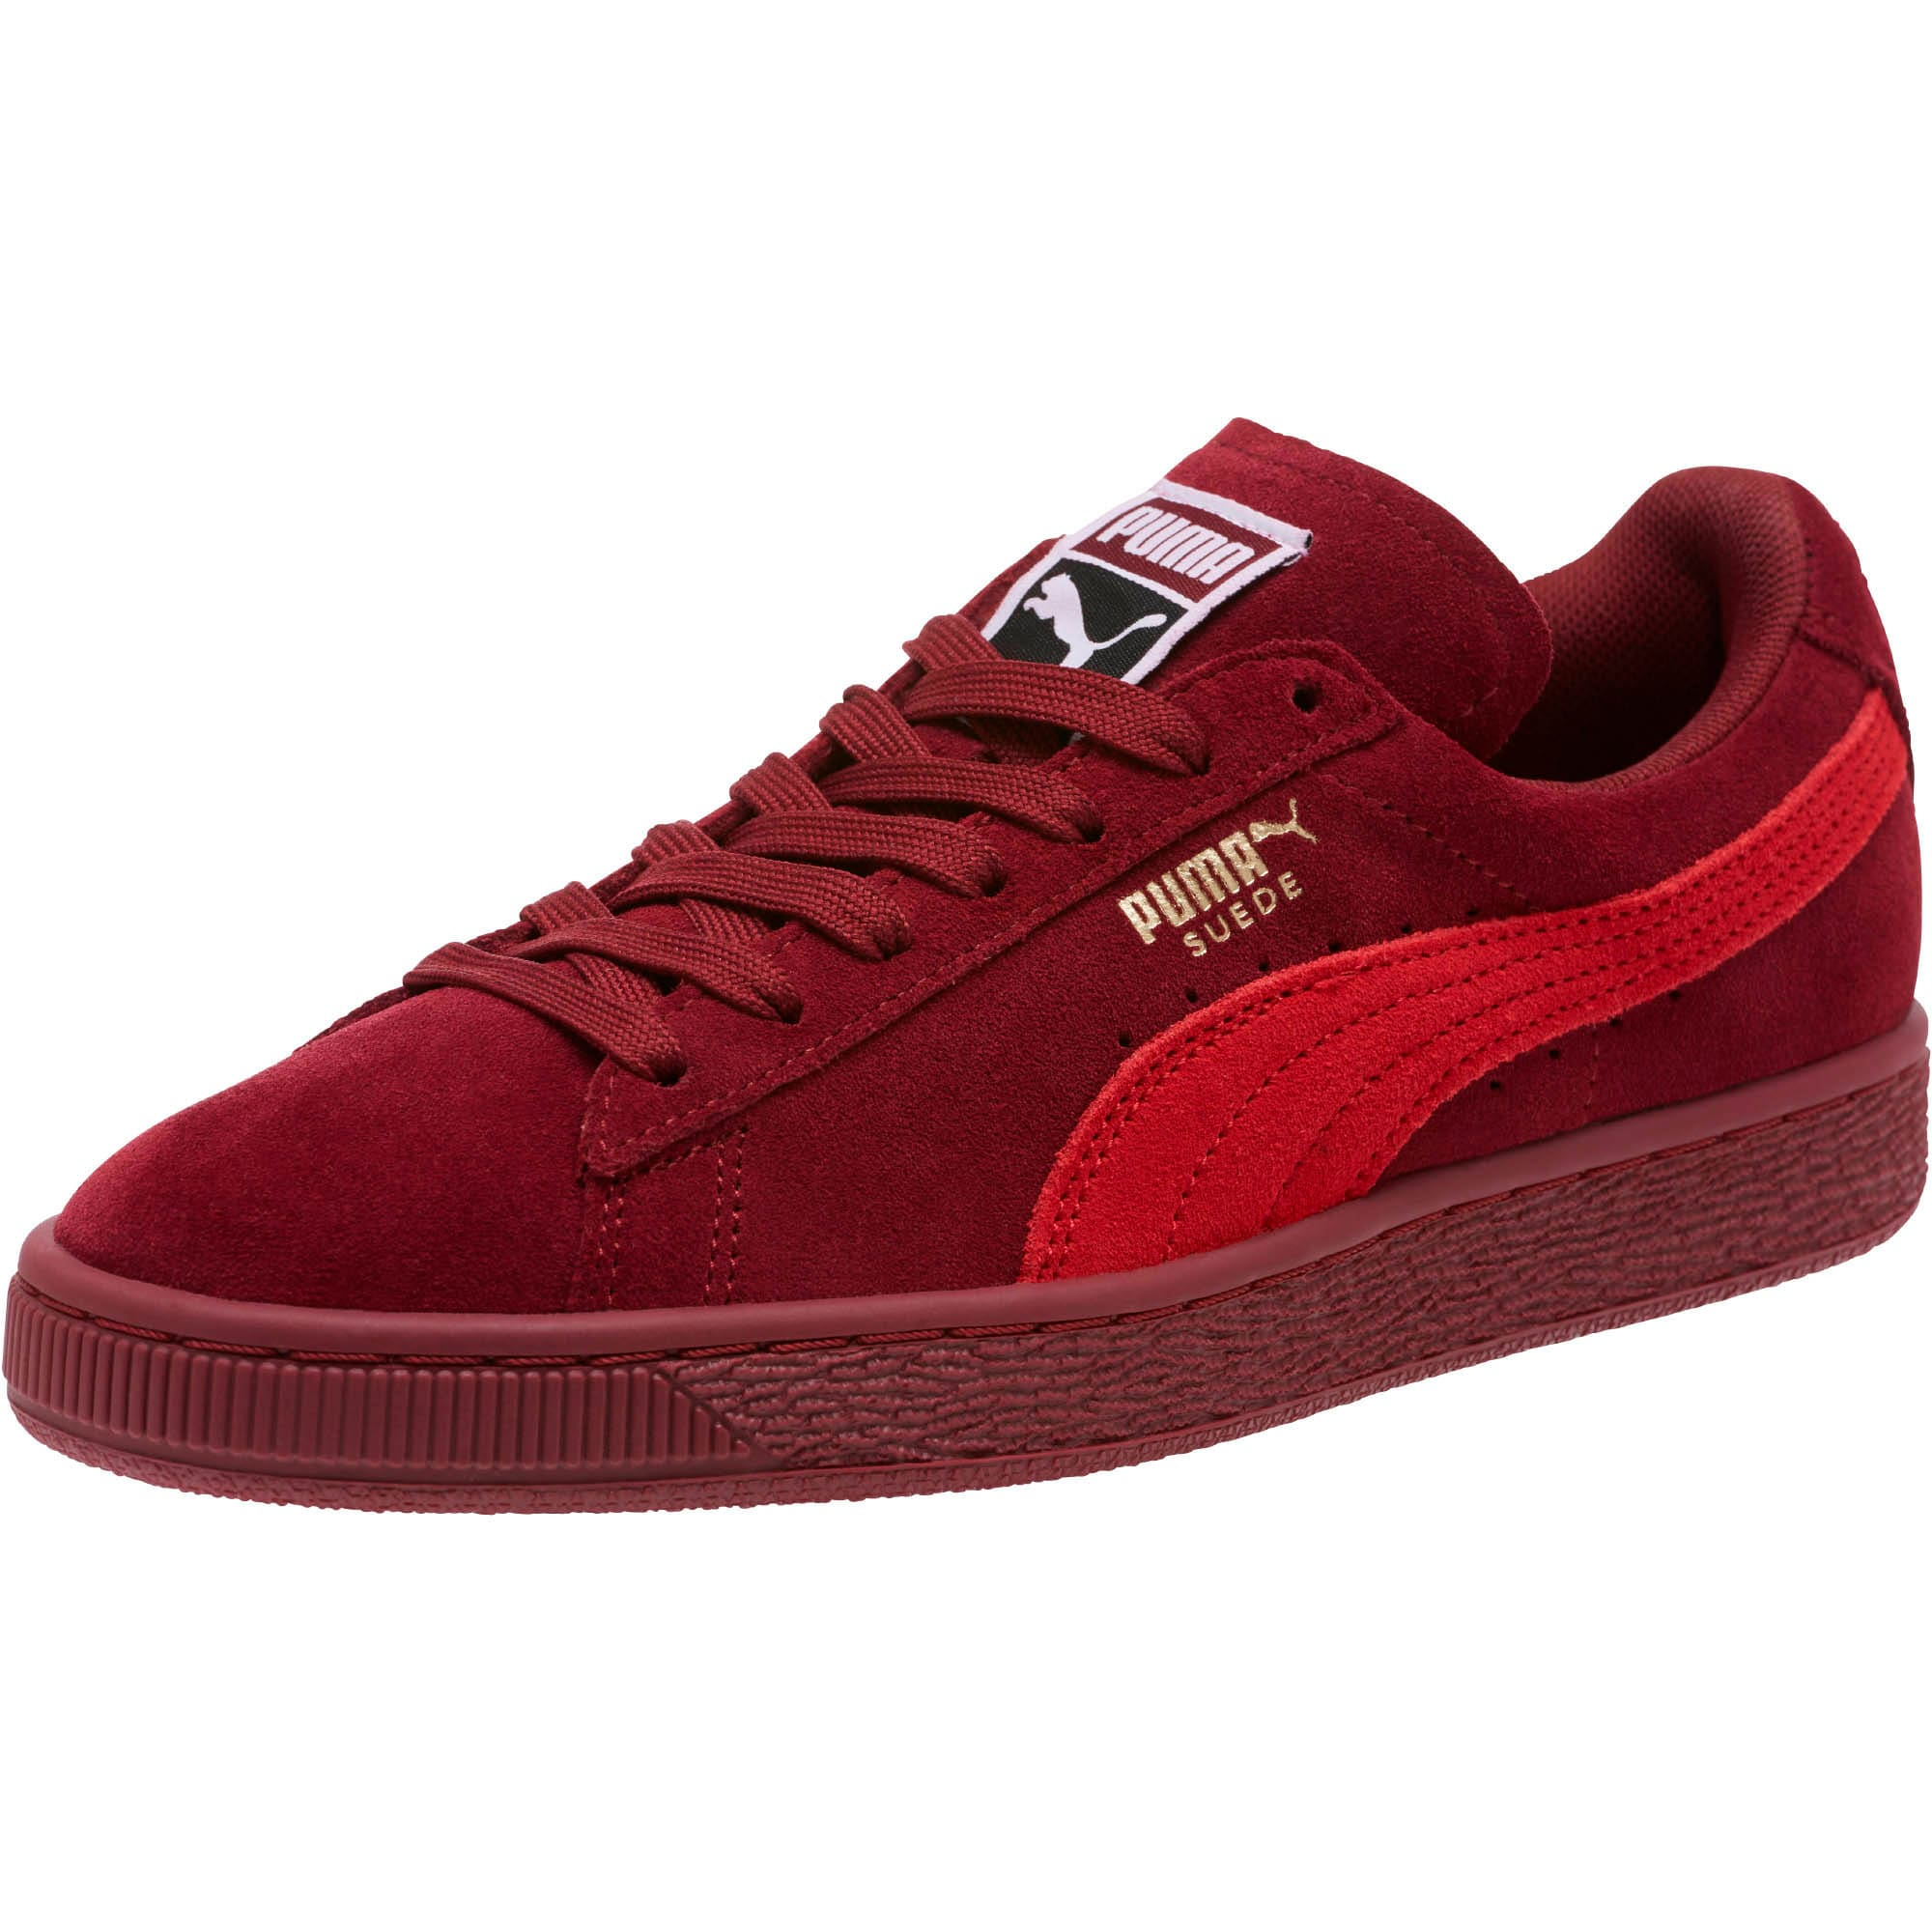 Thumbnail 1 of Suede Classic Women's Sneakers, Pomegranate-Ribbon Red, medium